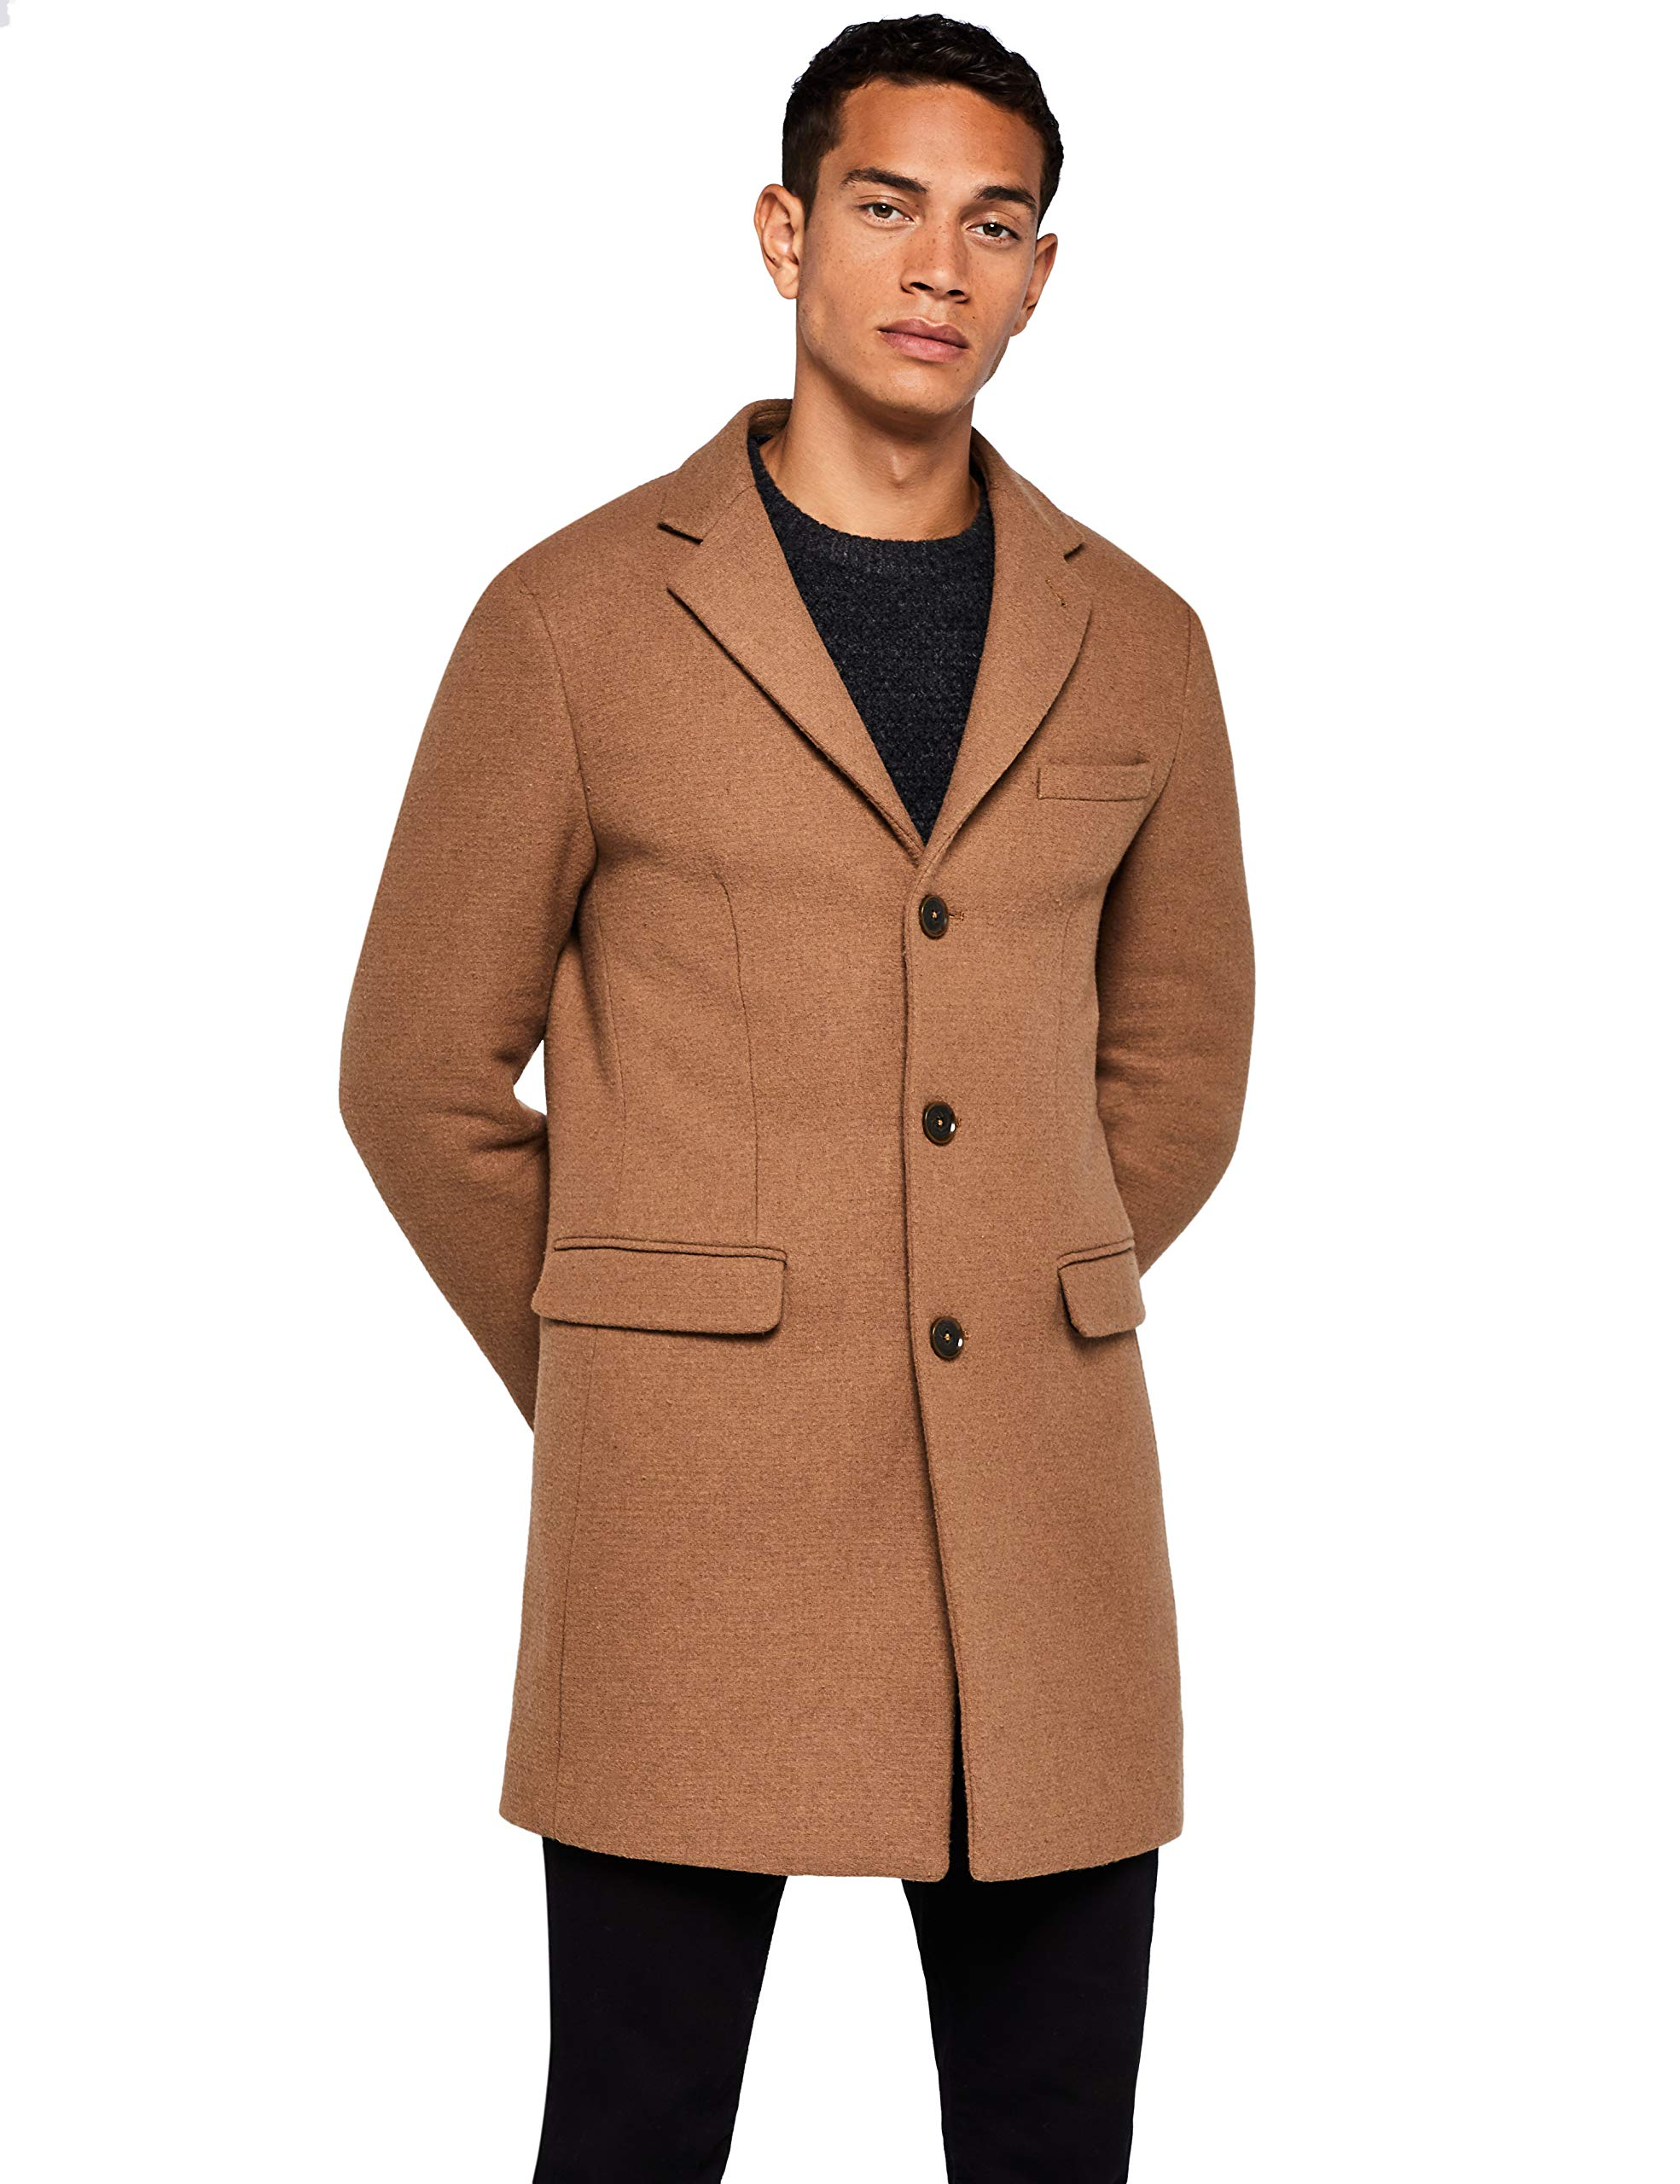 find. Men's Coat in Longline Wool, Brown (Camel), Medium by find.